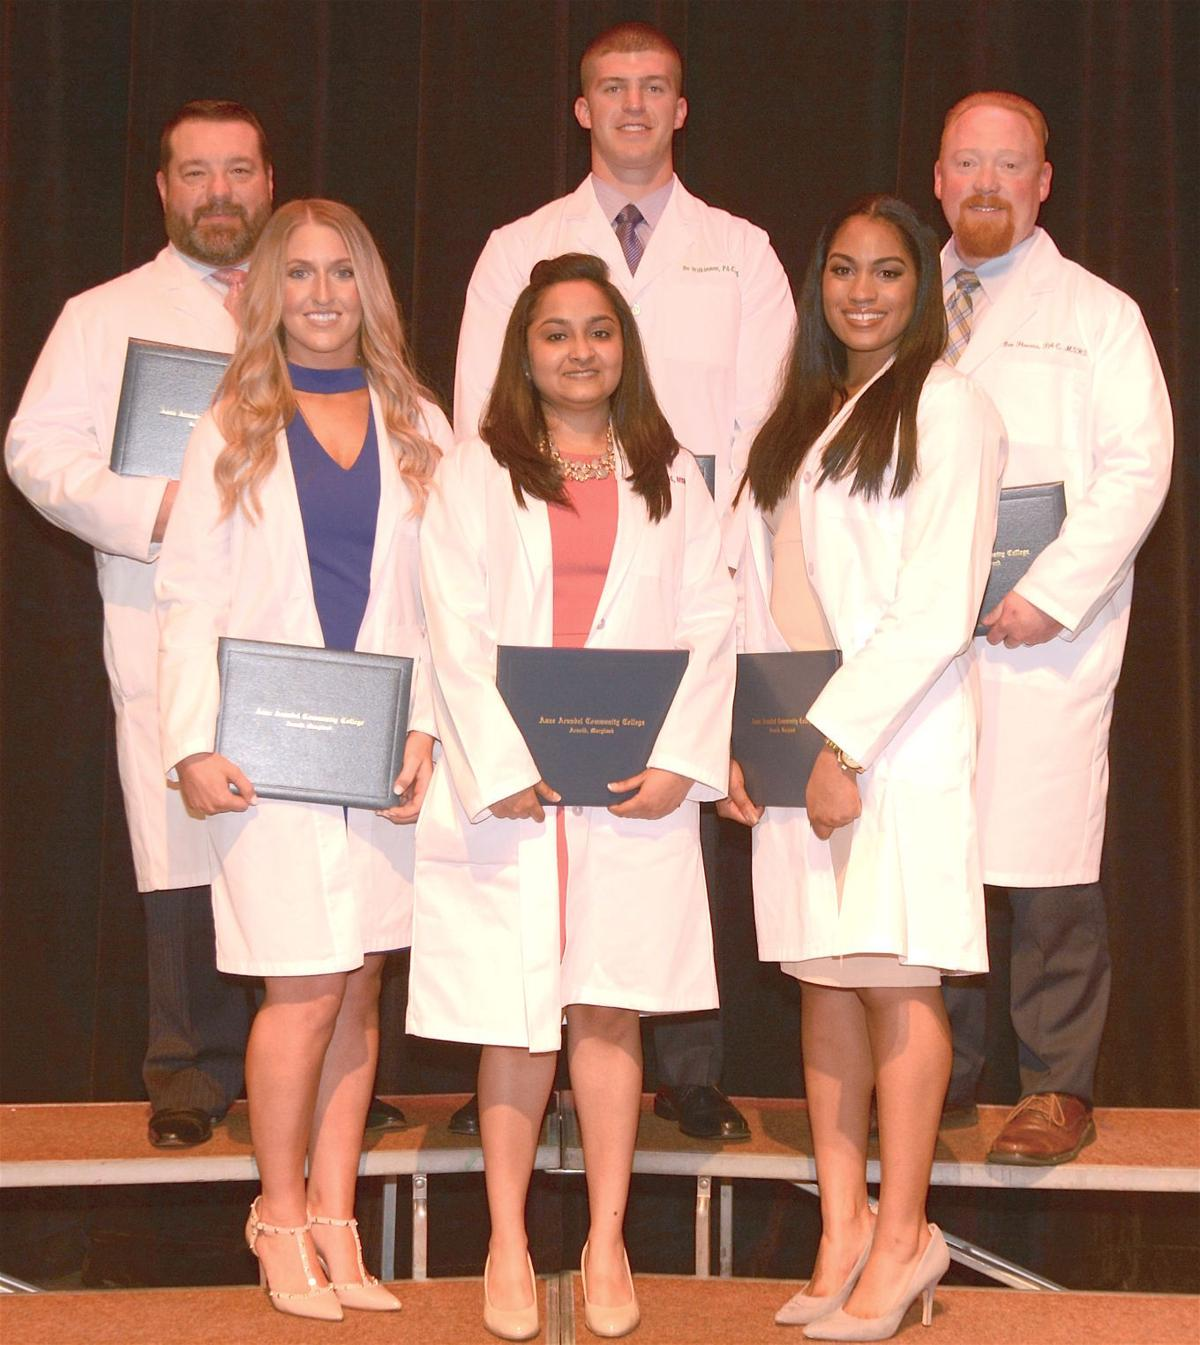 New physician assistant rotations in progress at Shore Regional Health